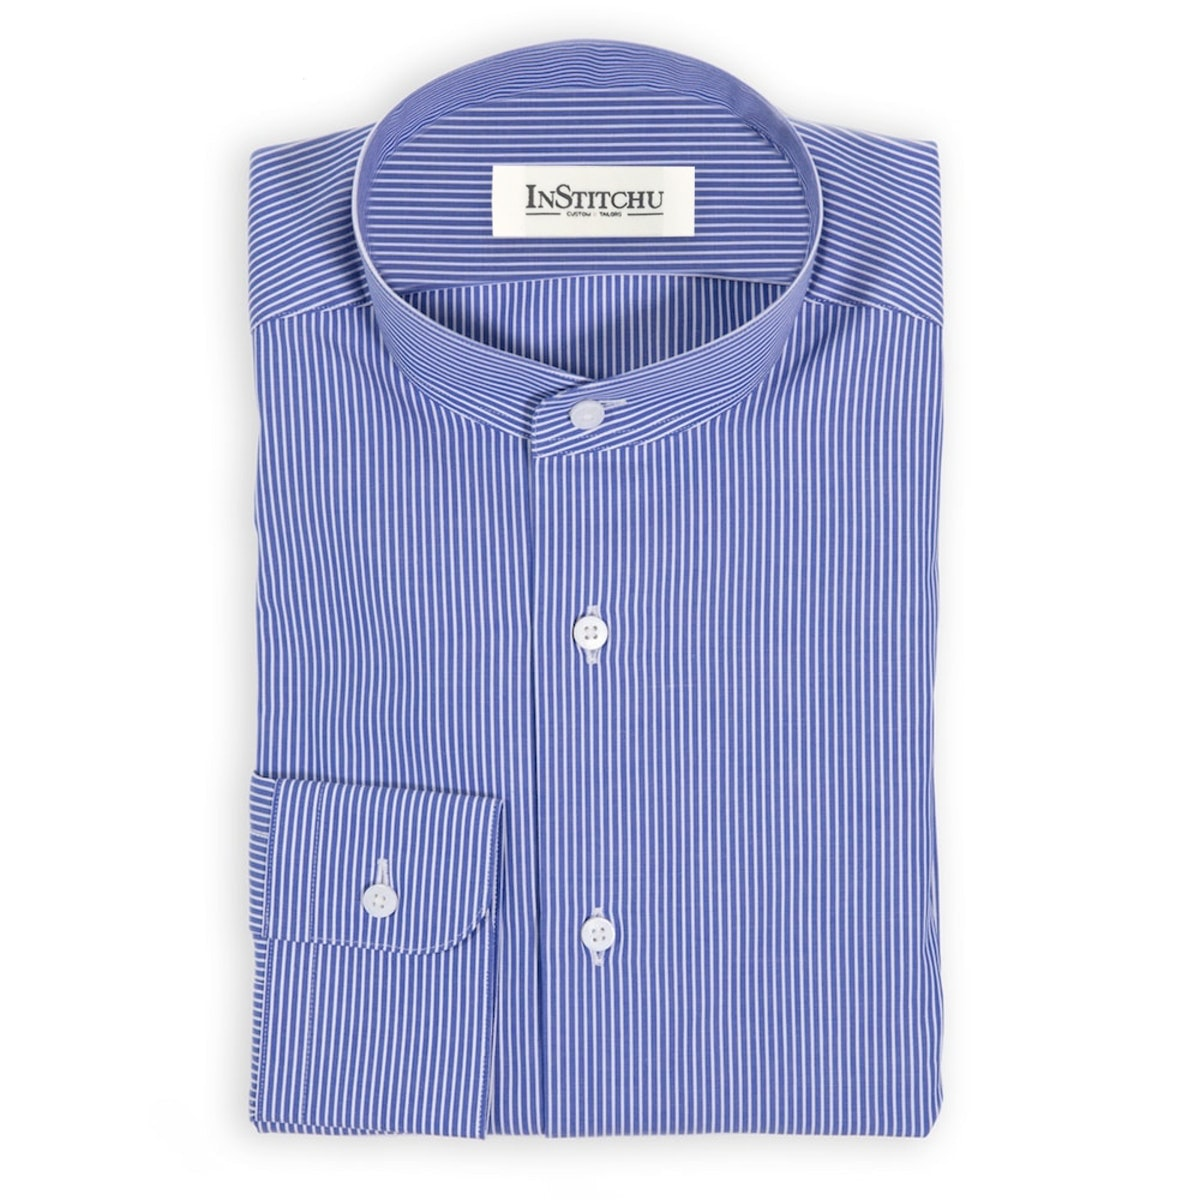 InStitchu Collection The Lam Blue Stripe Shirt